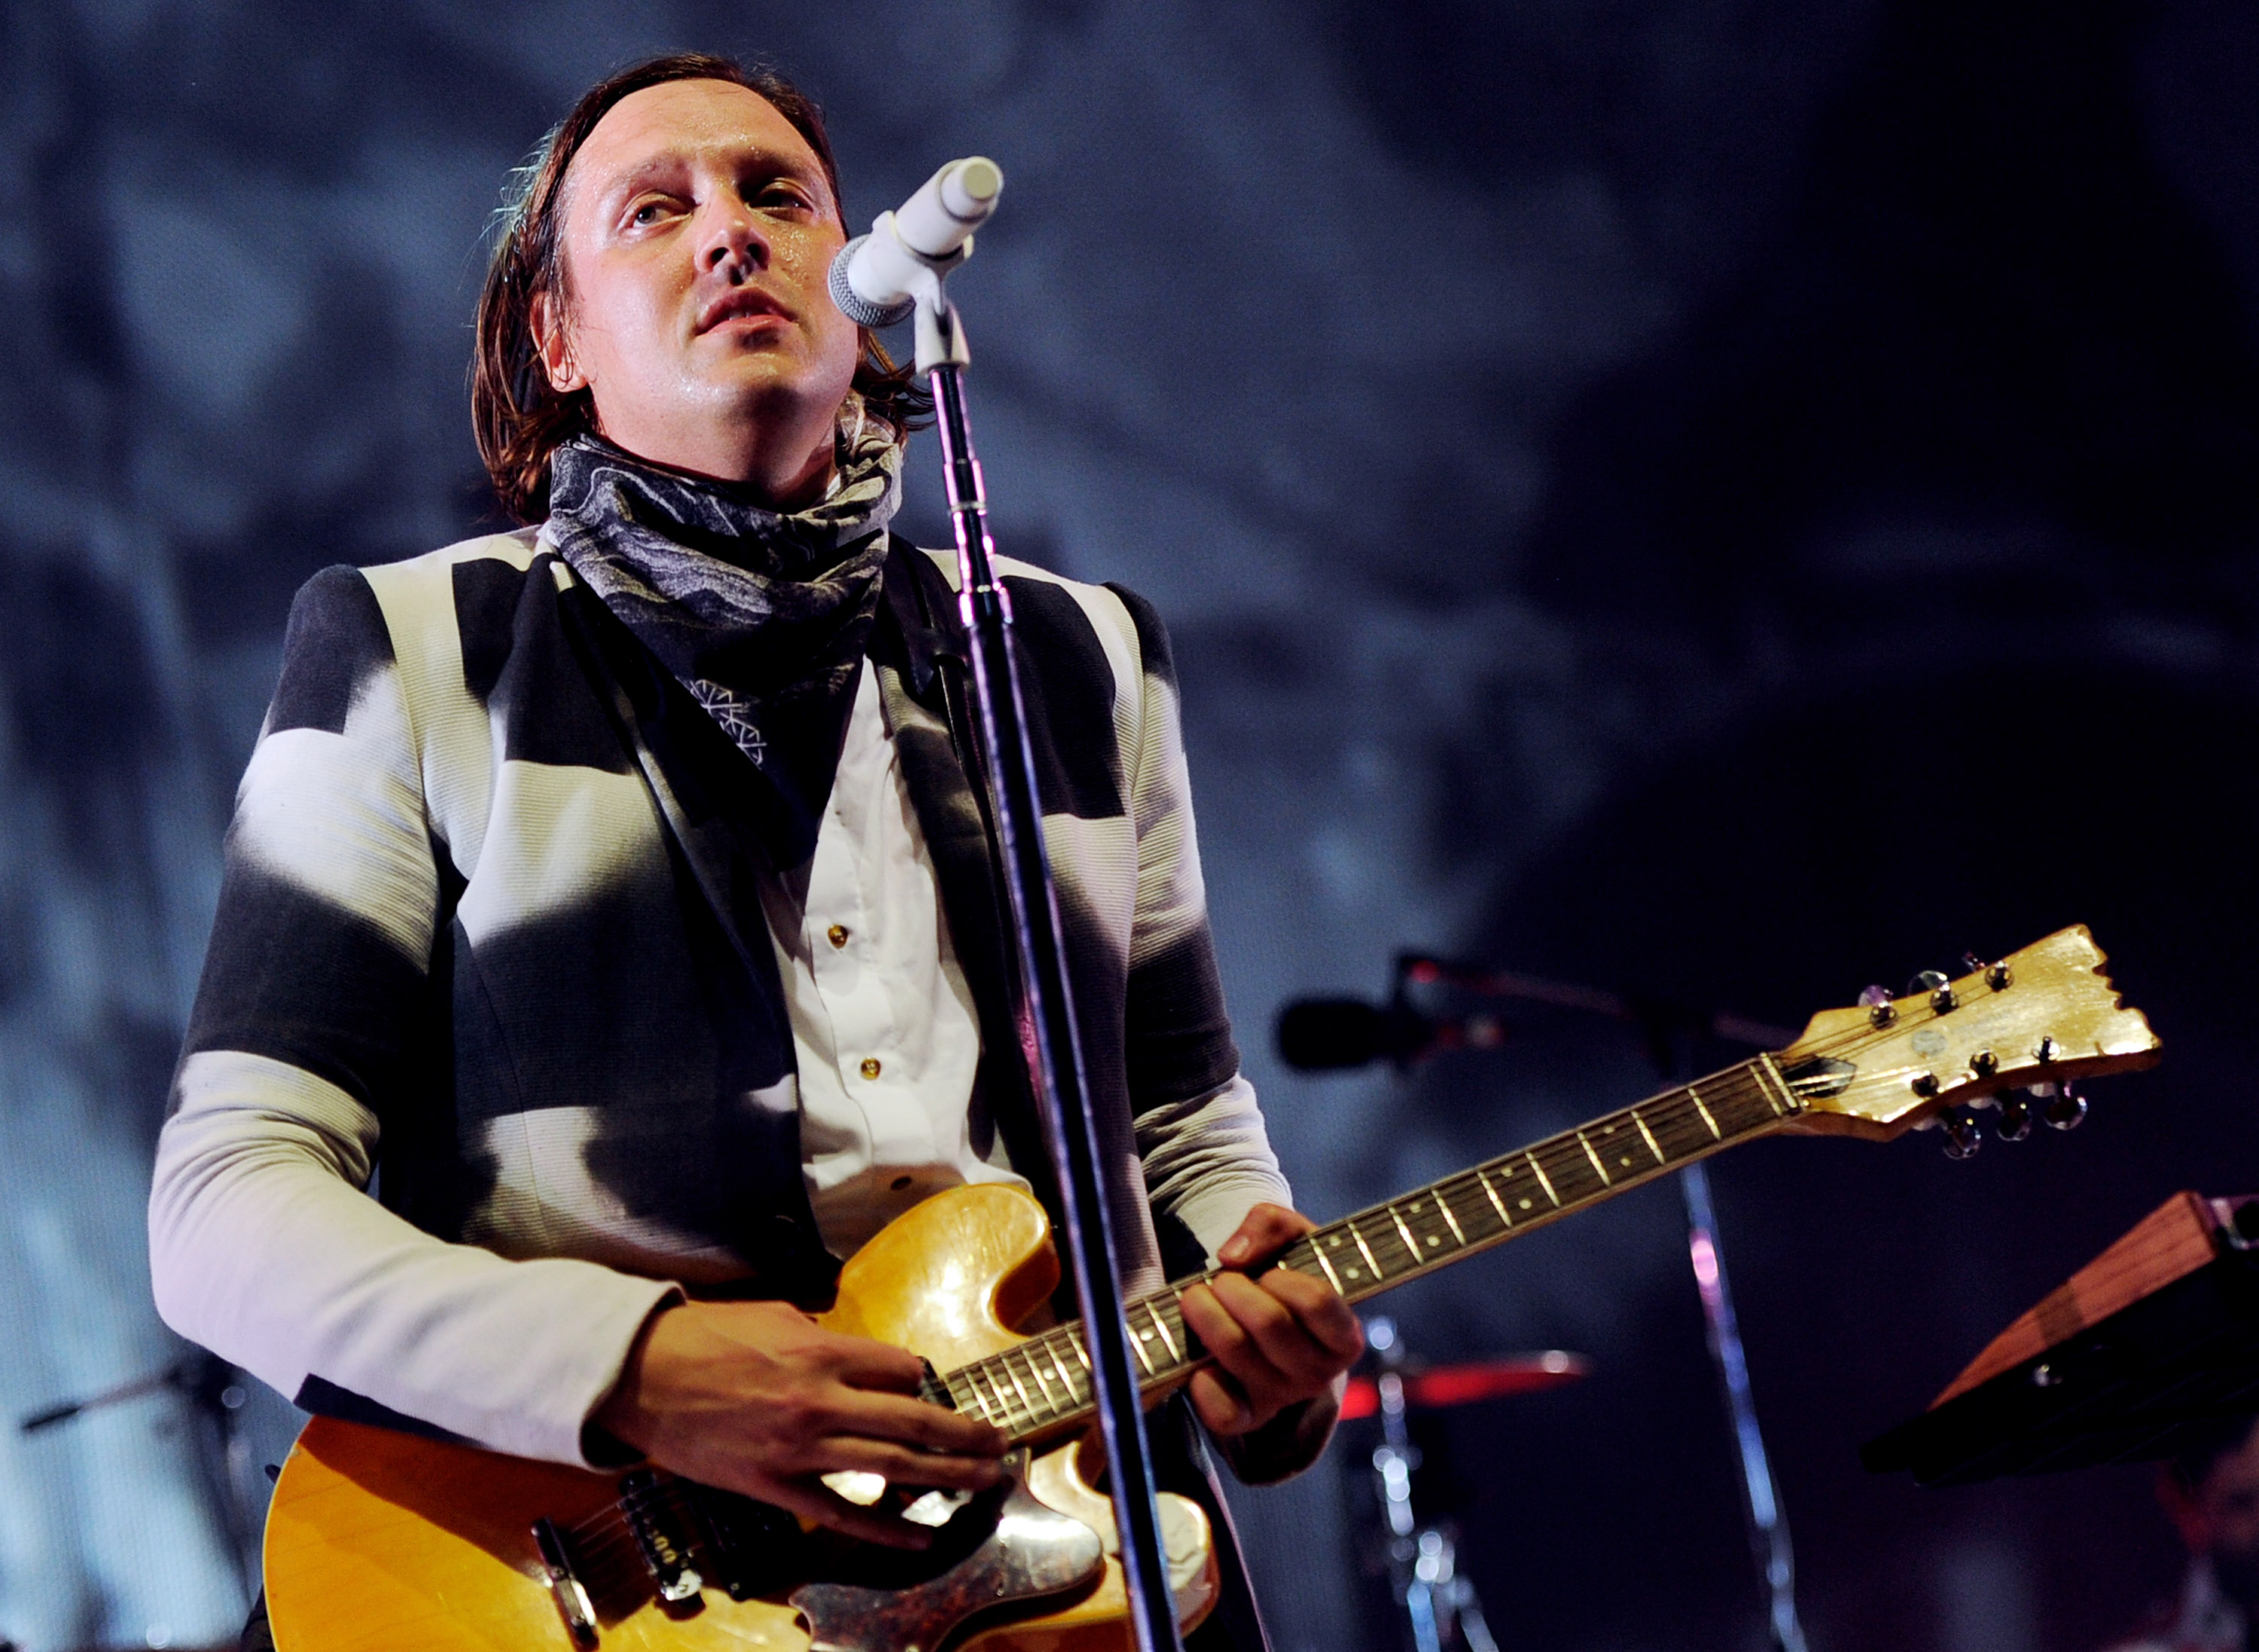 Arcade Fire announced as headliners for Isle Of Wight Festival 2017